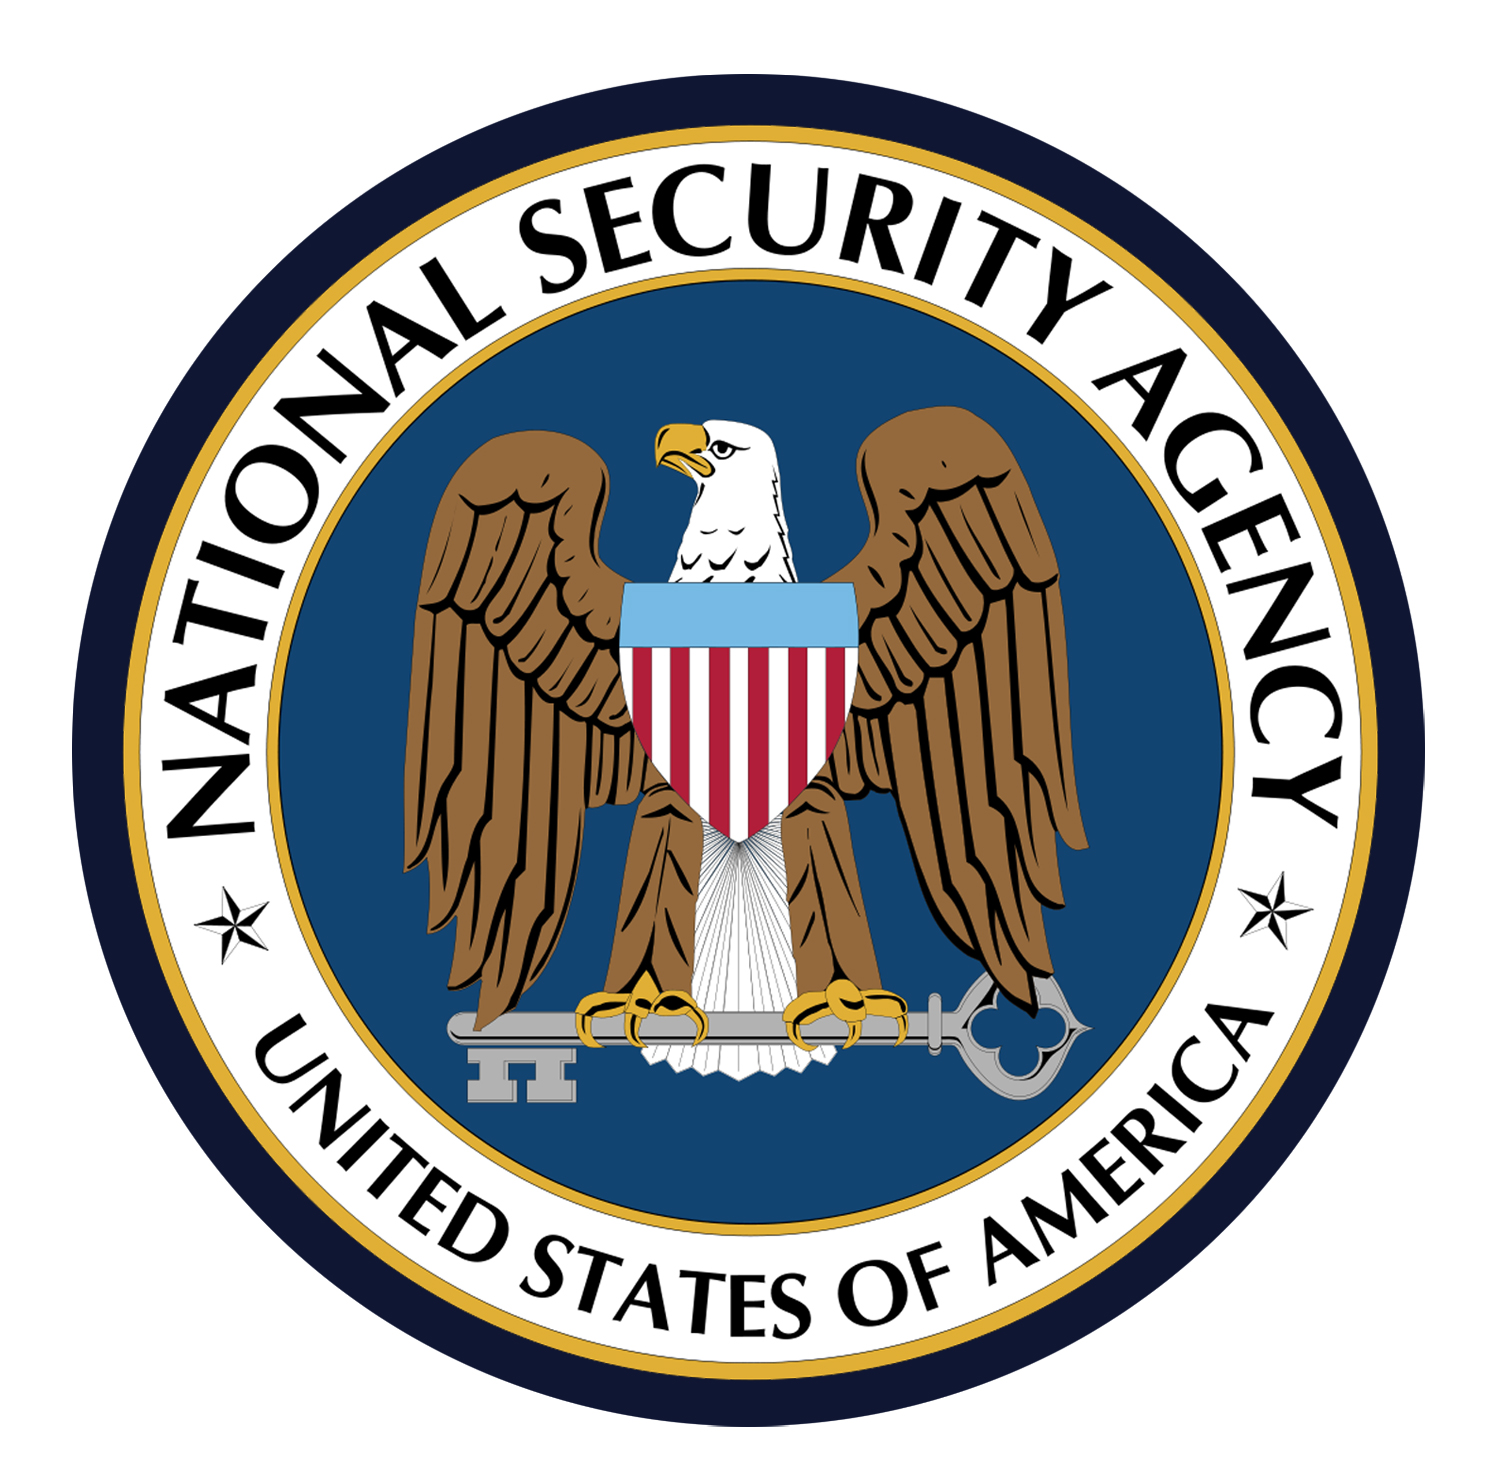 national security agency Find a job at national security agency apply for national security agency job opportunities from entry level to management positions at monster.